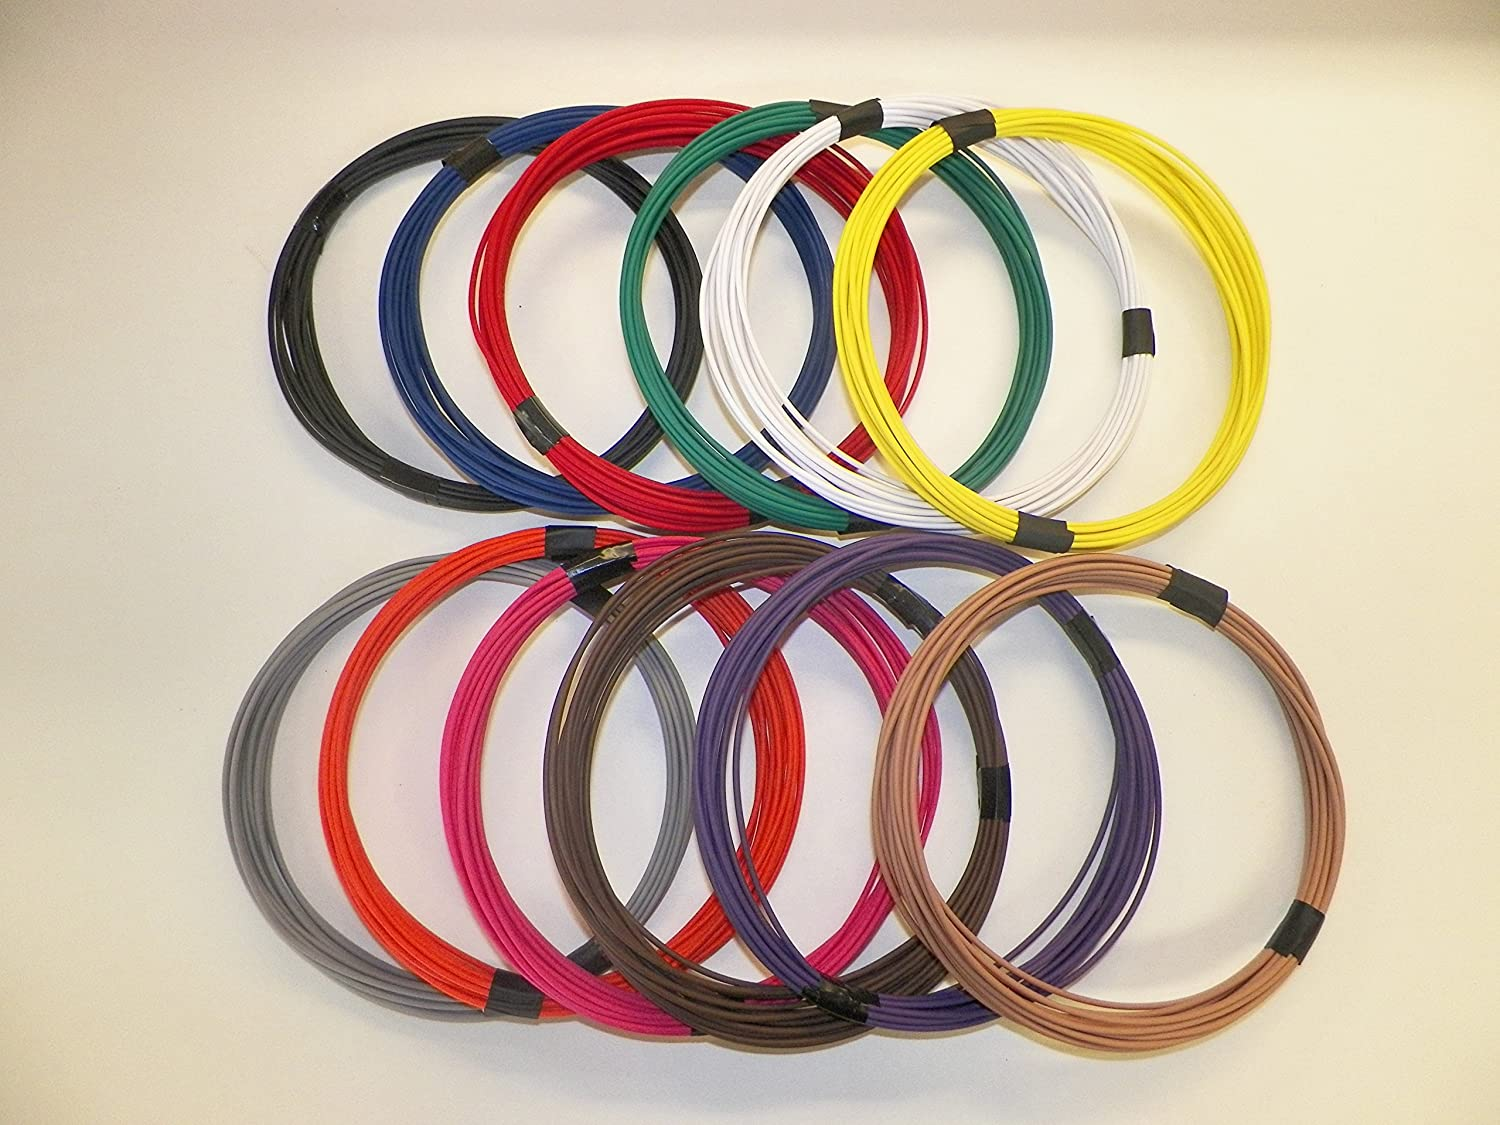 HIGH TEMP WE HAVE MANY COLORS 16 AWG GXL RED AUTOMOTIVE WIRE 25 FEET